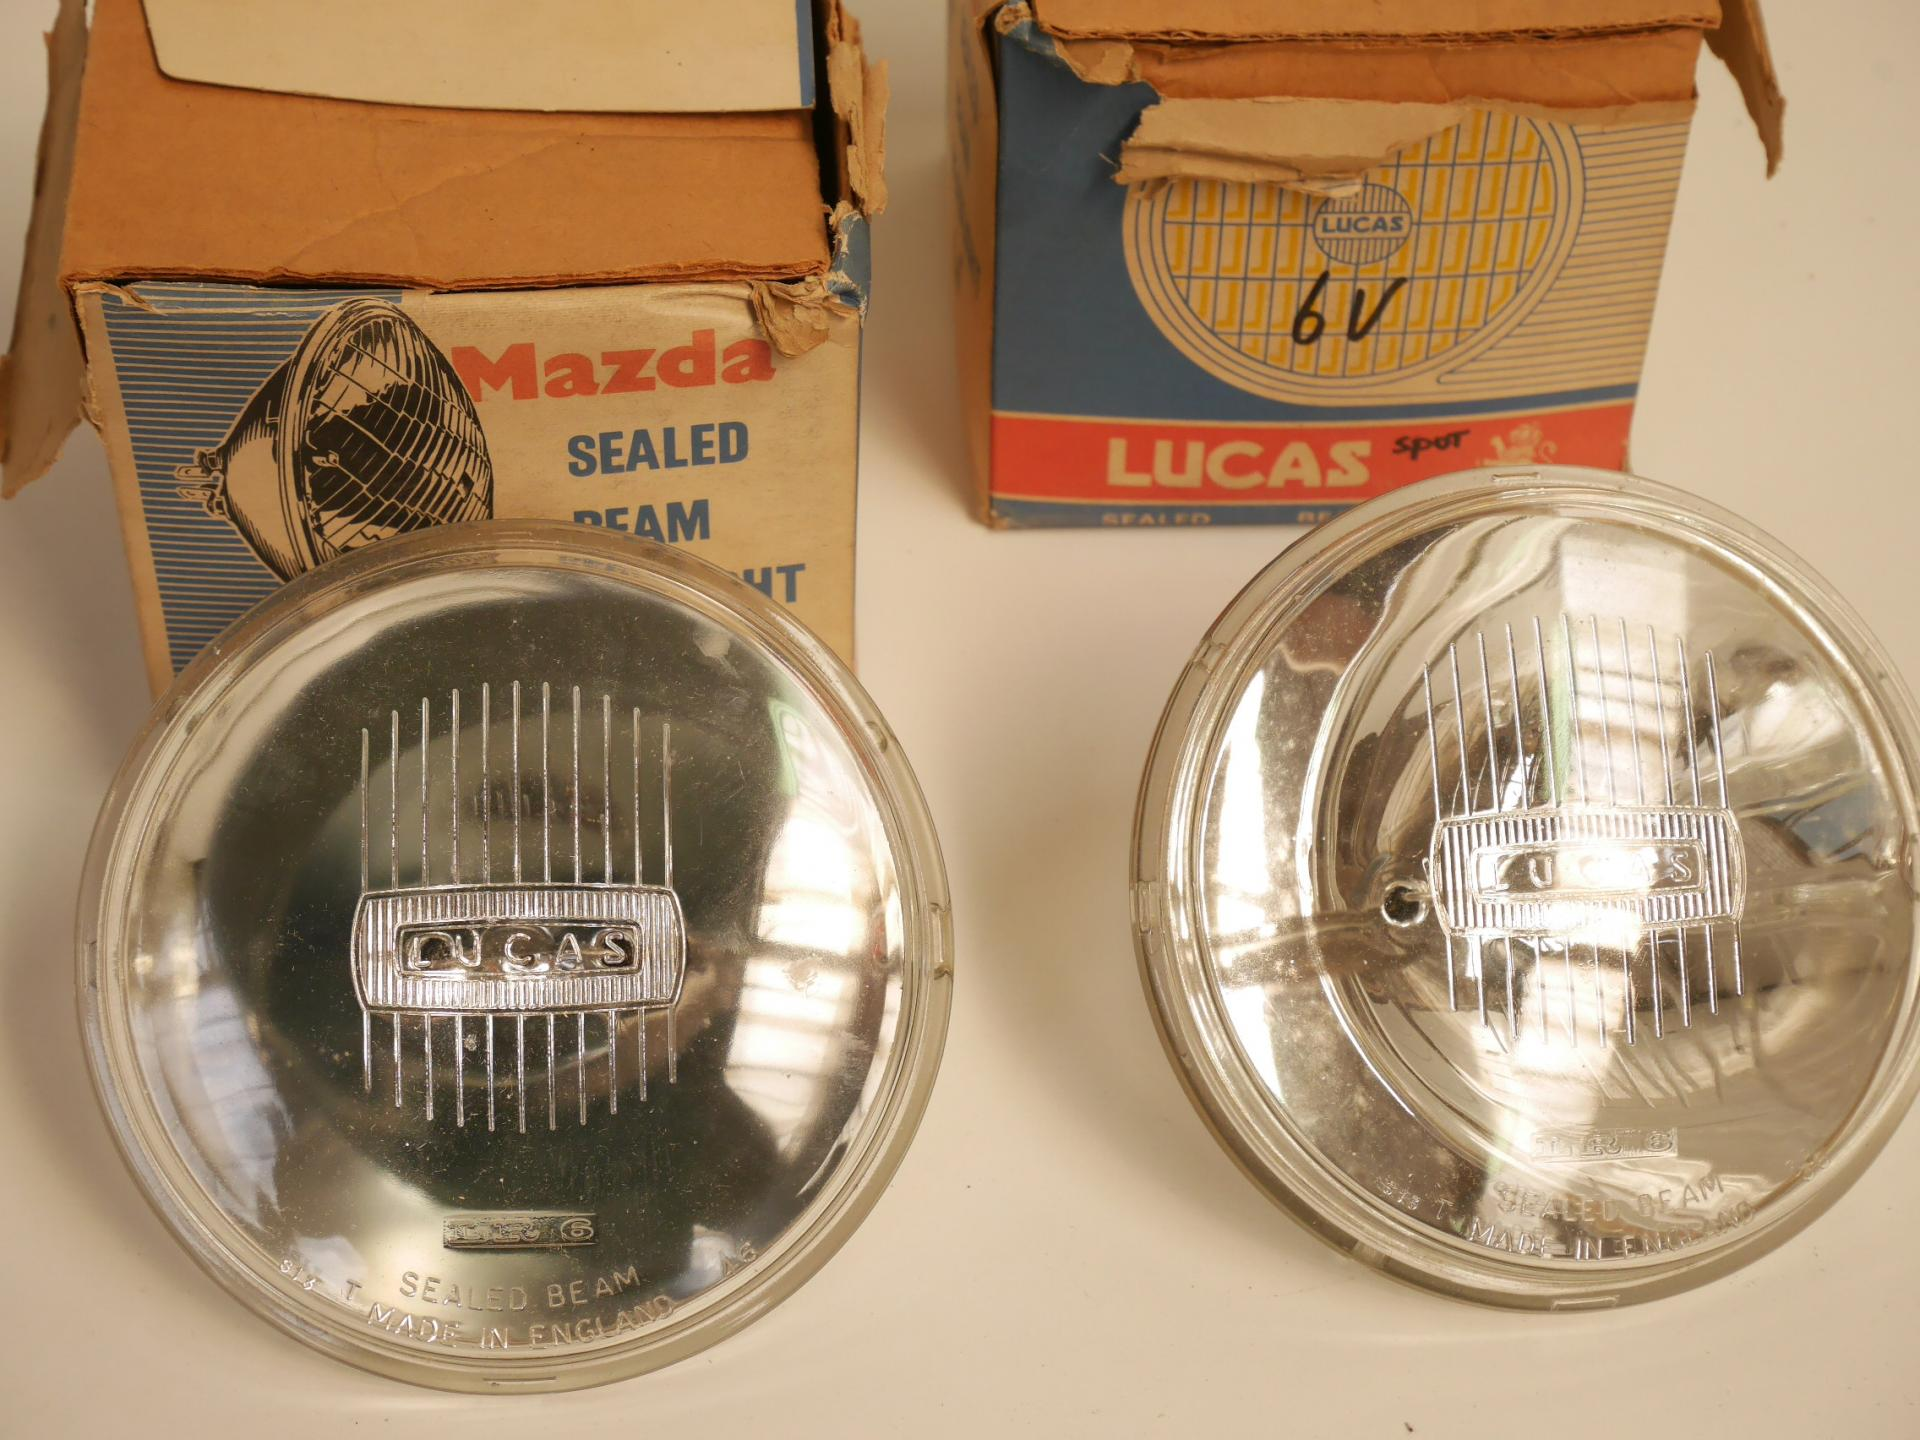 Lucas sealed beam units